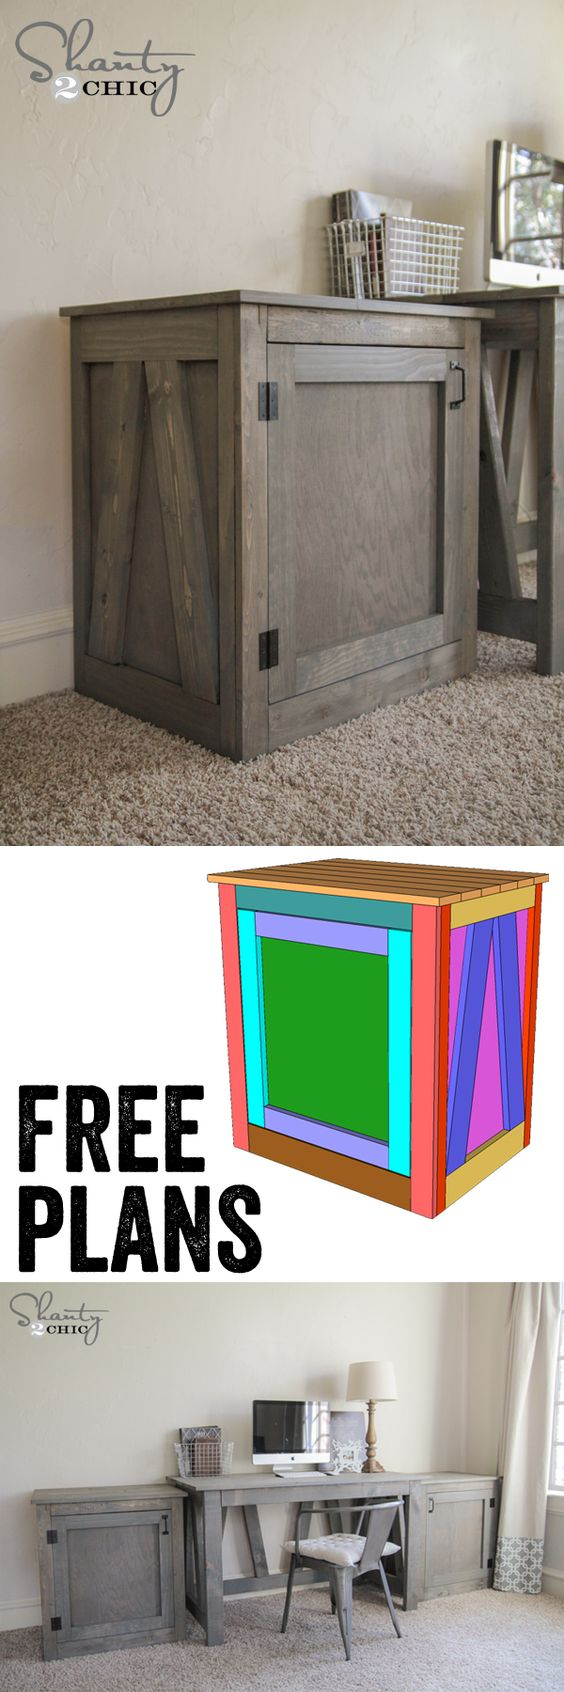 Free Woodworking Plans Diy Desk Or Nightstand Storage